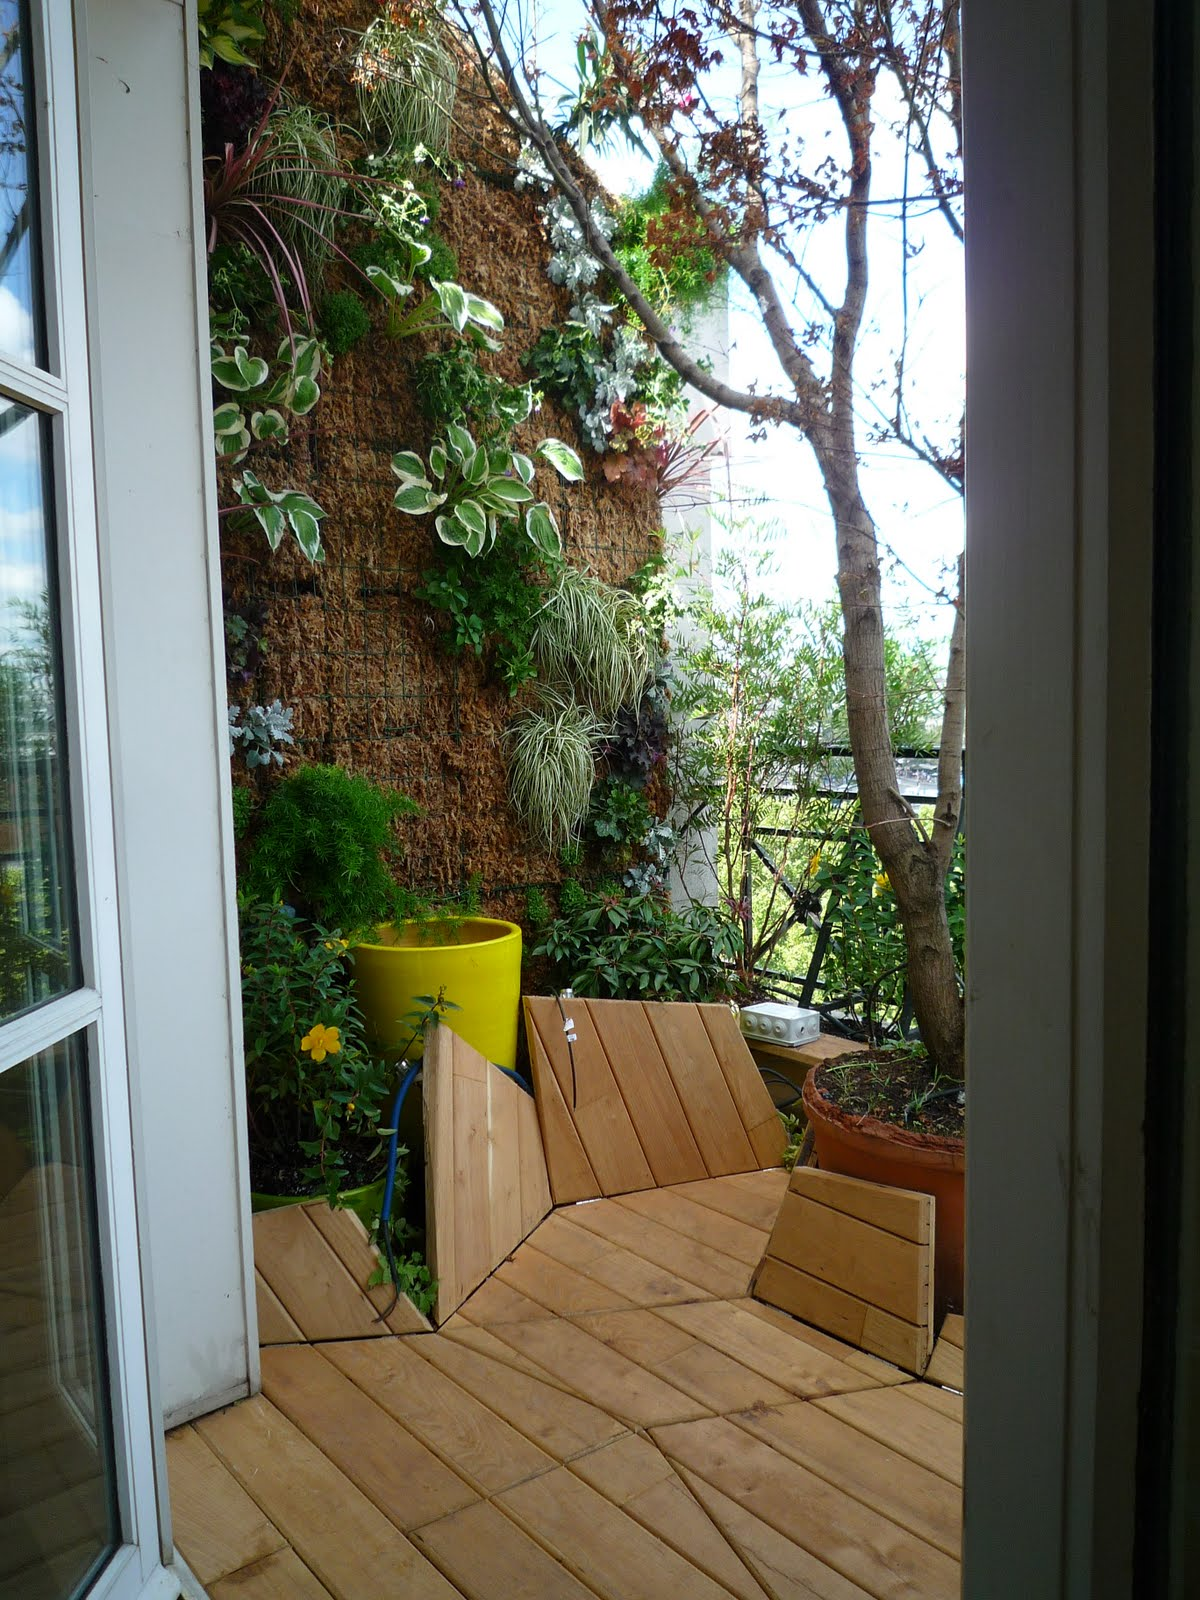 Am nagement d 39 un balcon paris les mains de jardin for Balcons et terrasses de paris